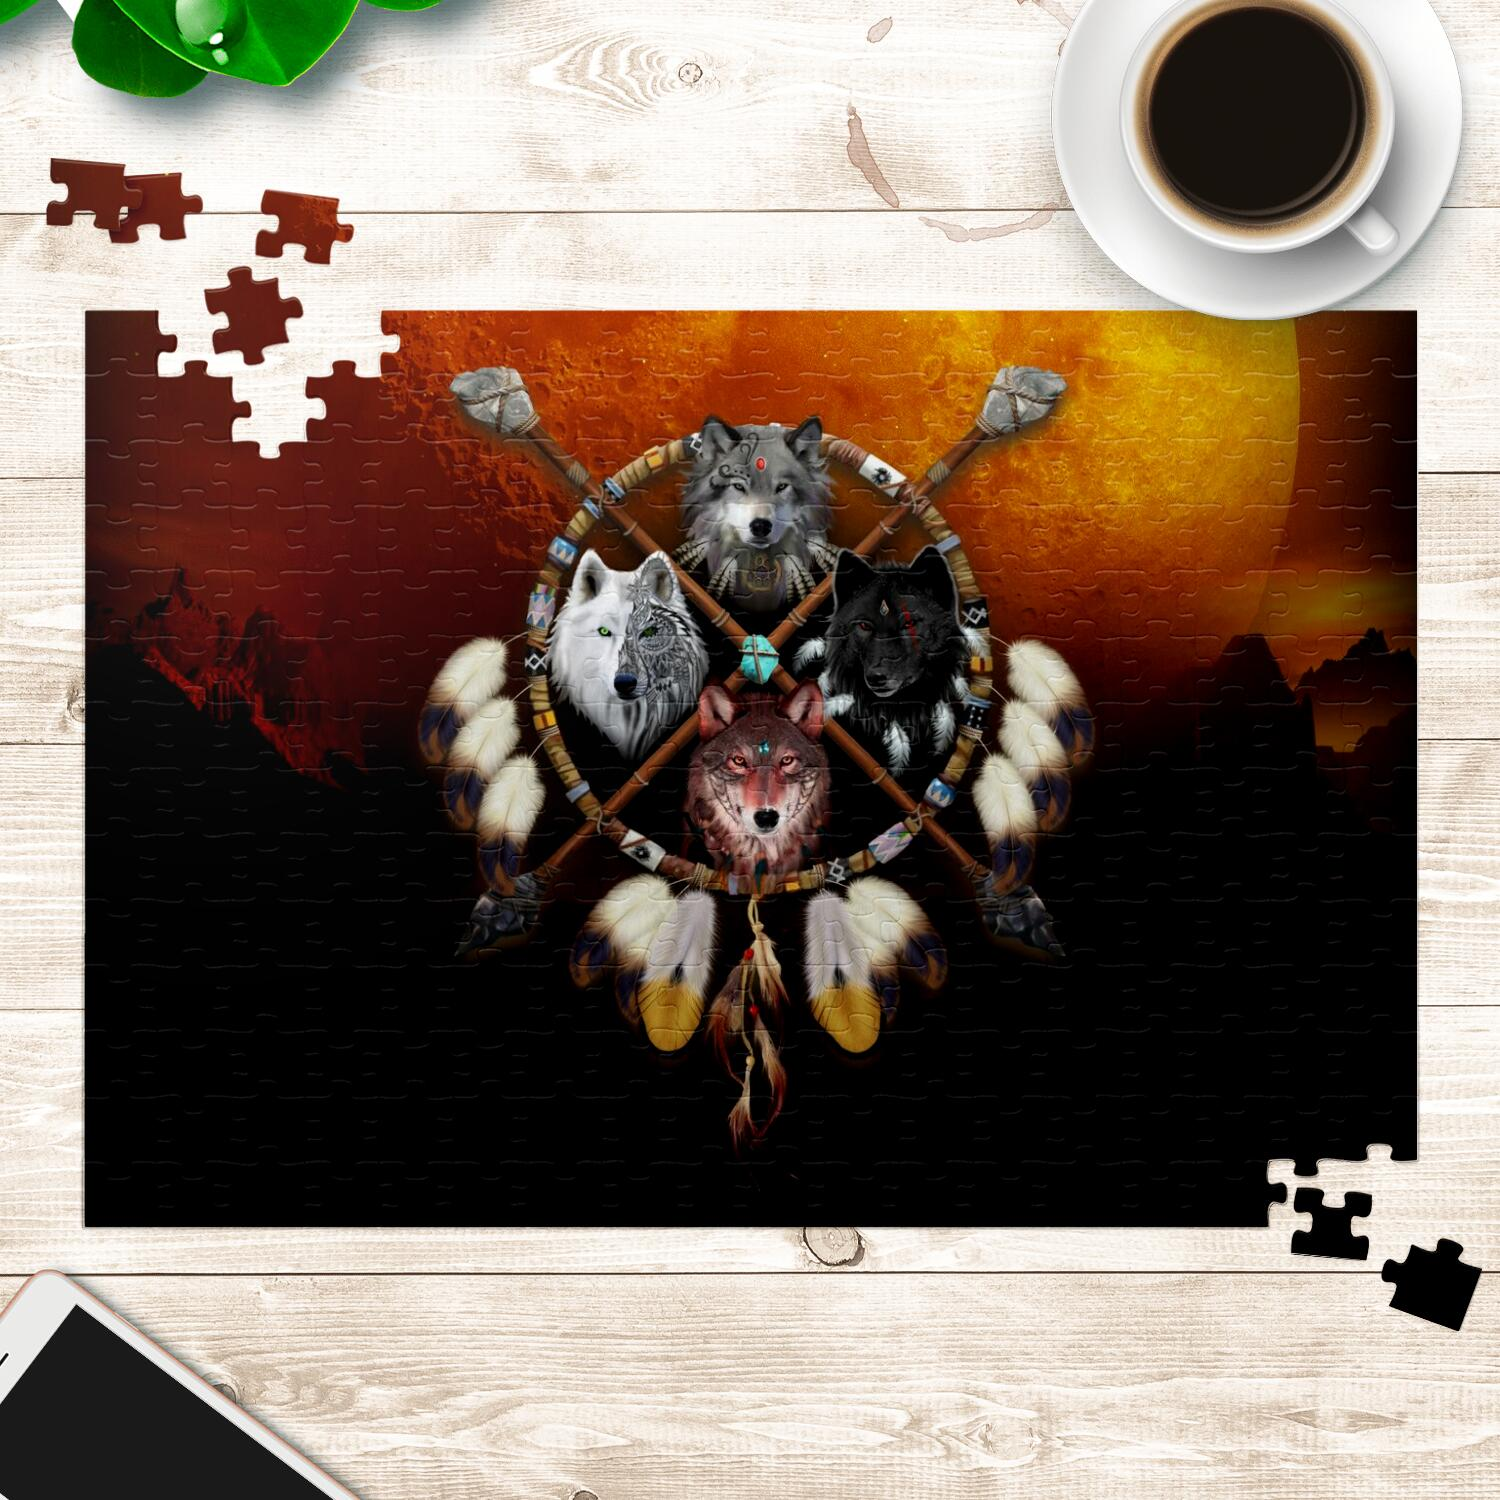 4 Wolves Warrior Jigsaw Puzzles